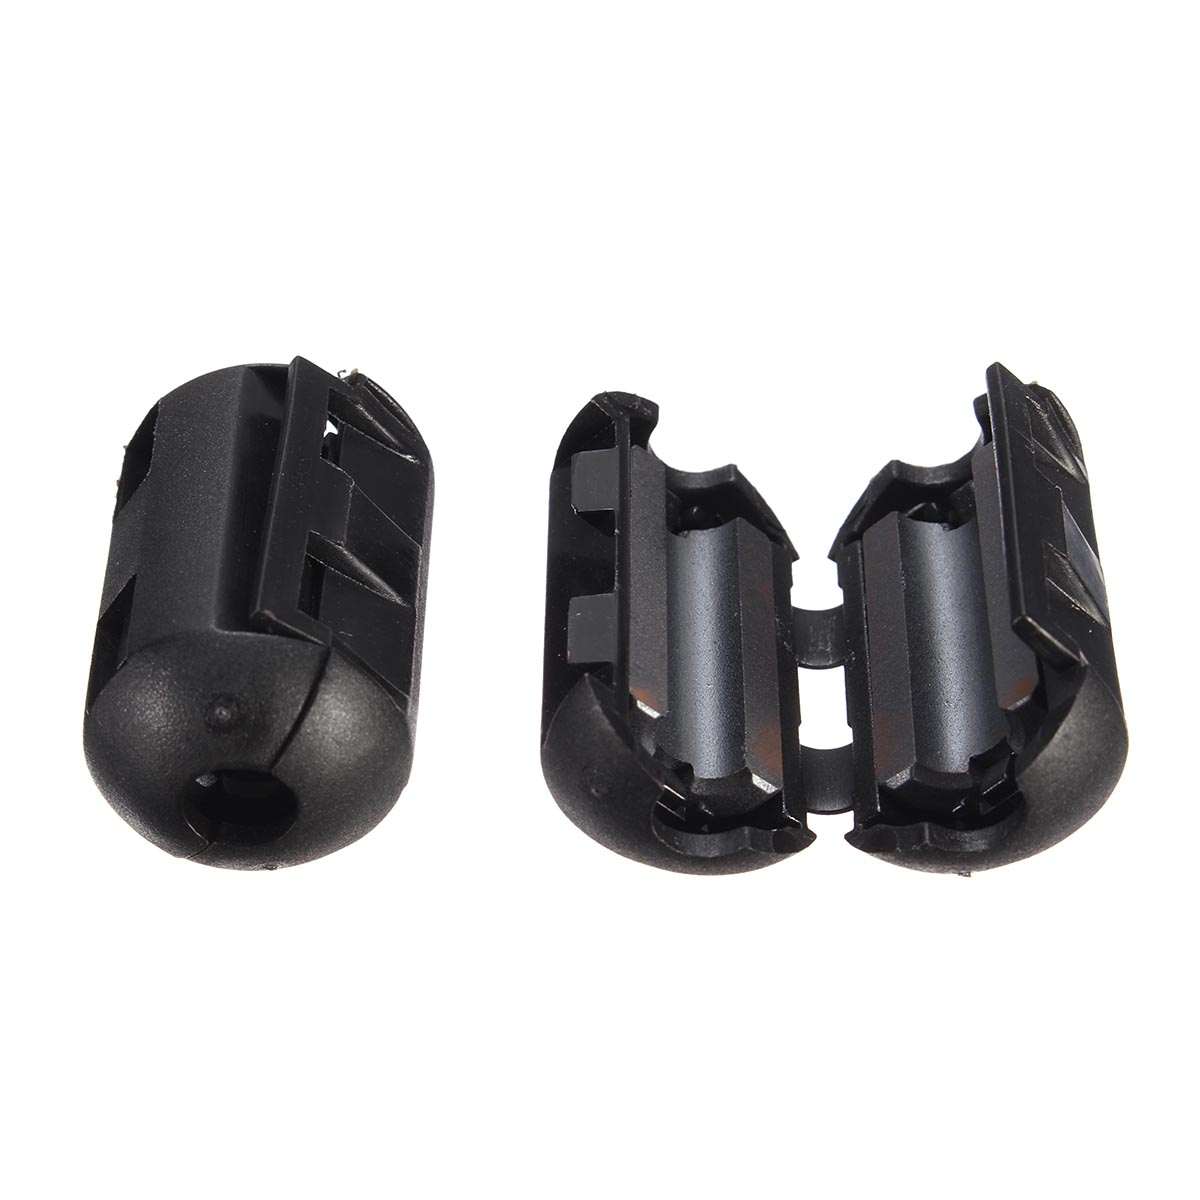 5Pcs 3.5mm Black Cable Wire Snap Clamp Clip RFI EMI EMC Noise Filters Ferrite Core Case